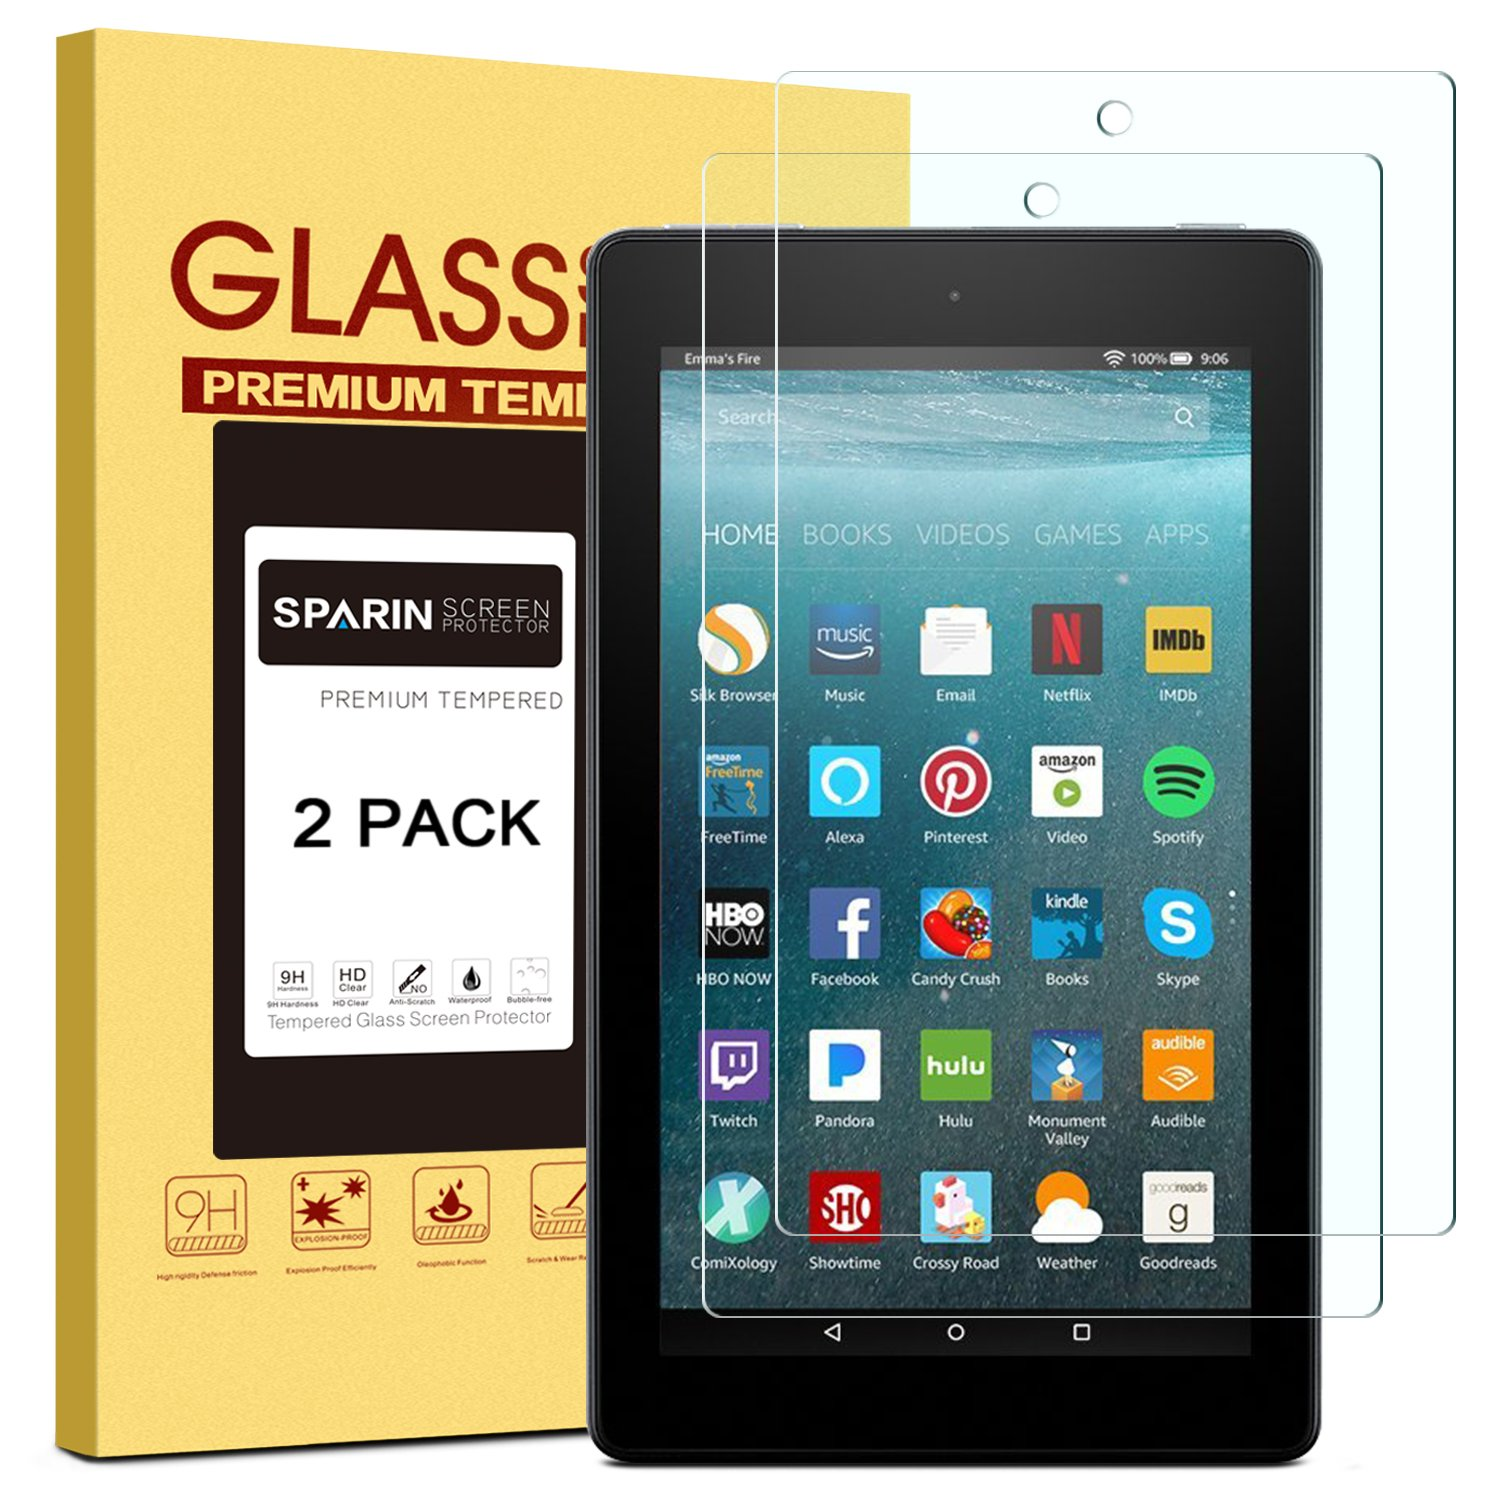 [2 Pack] Fire 7 / Fire 7 Kids Edition Screen Protector, SPARIN Tempered Glass Screen Protector for All-New Fire 7 (9th/7th Gen, 2019/2017 Release) with Bubble Free/Scratch Resistant